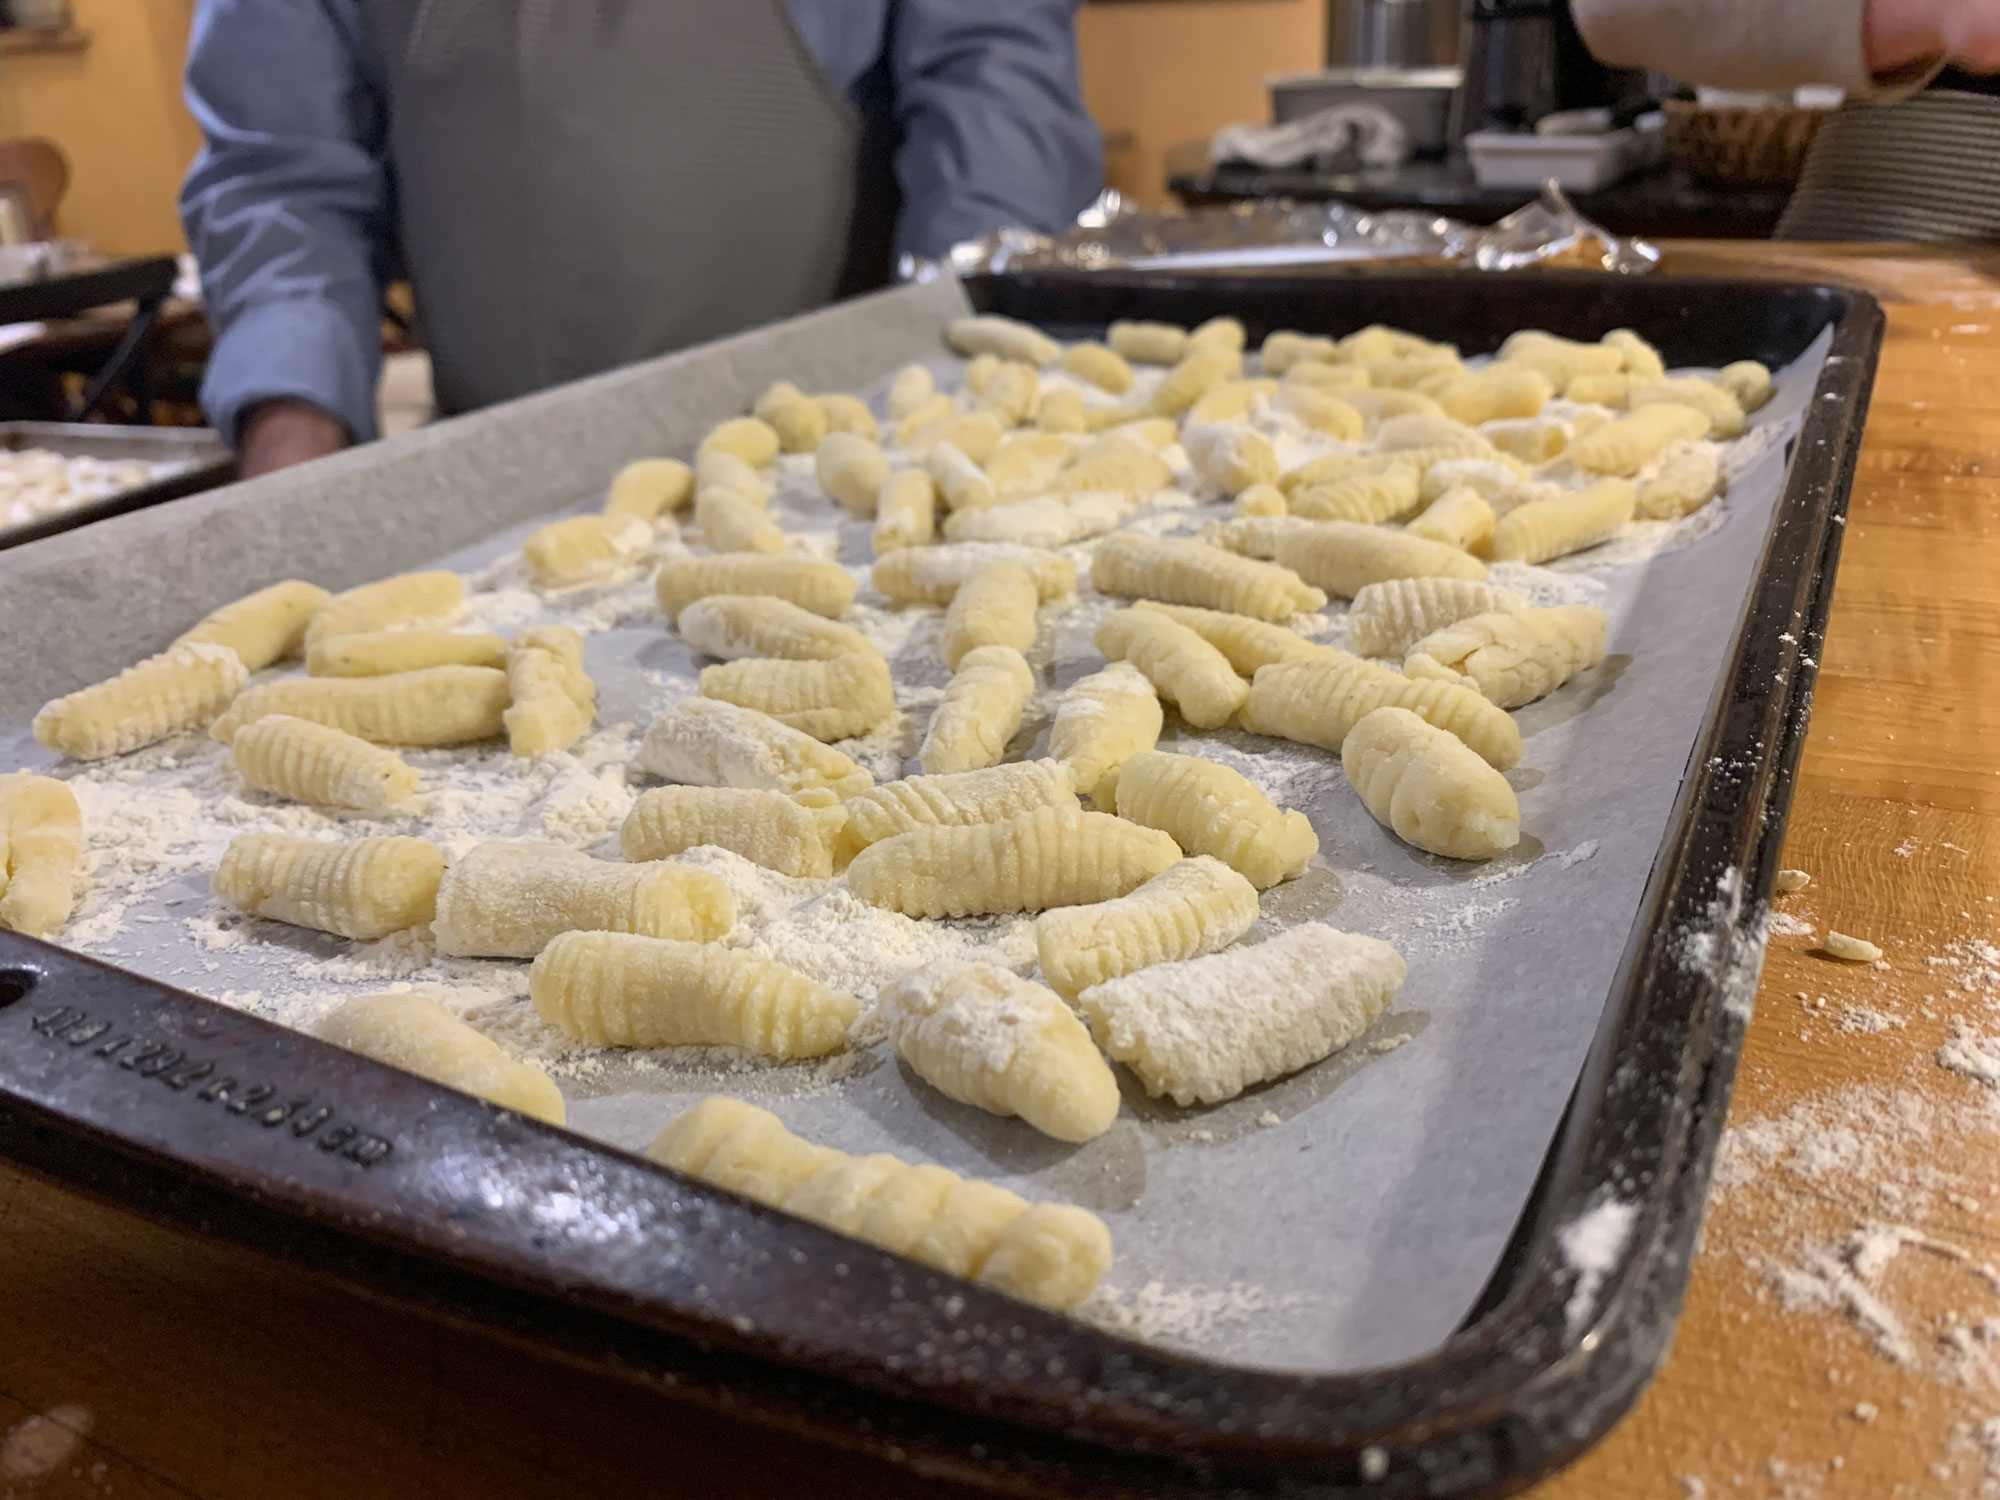 A tray of freshly rolled potato gnocchi